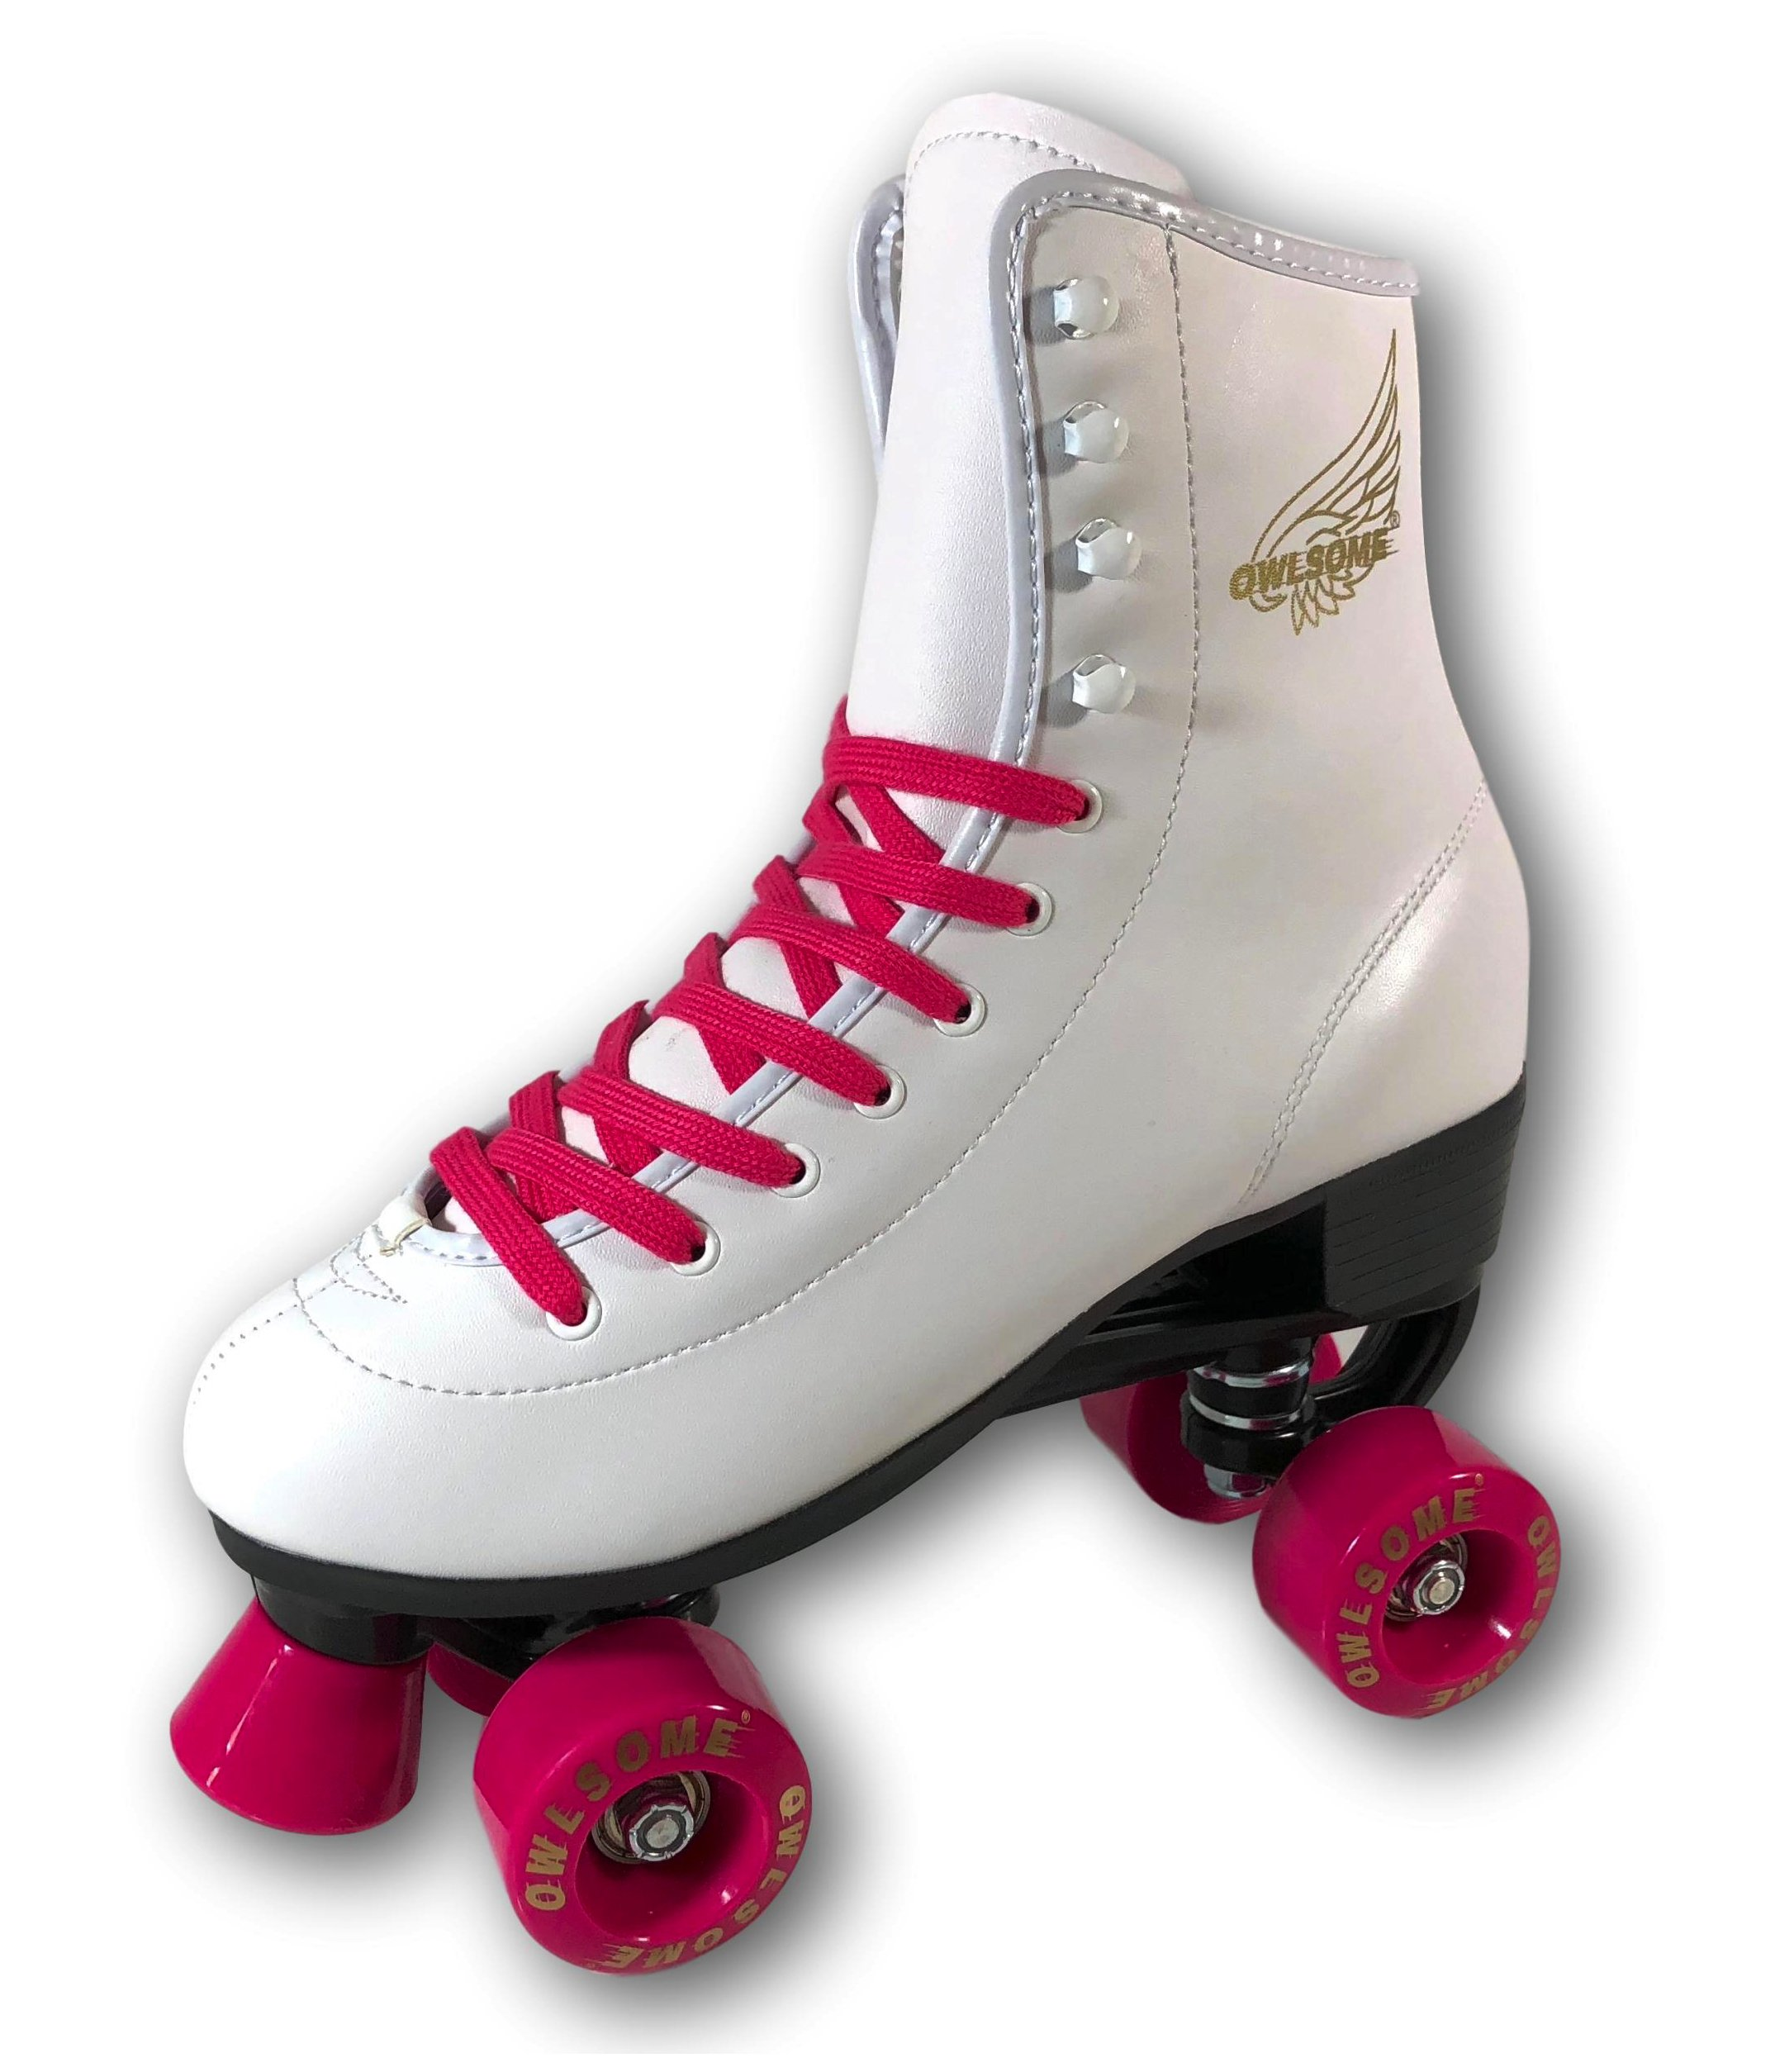 Owlsome Classic High Top Boot Style Soft Faux Leather Roller Skates for Adult & Youth